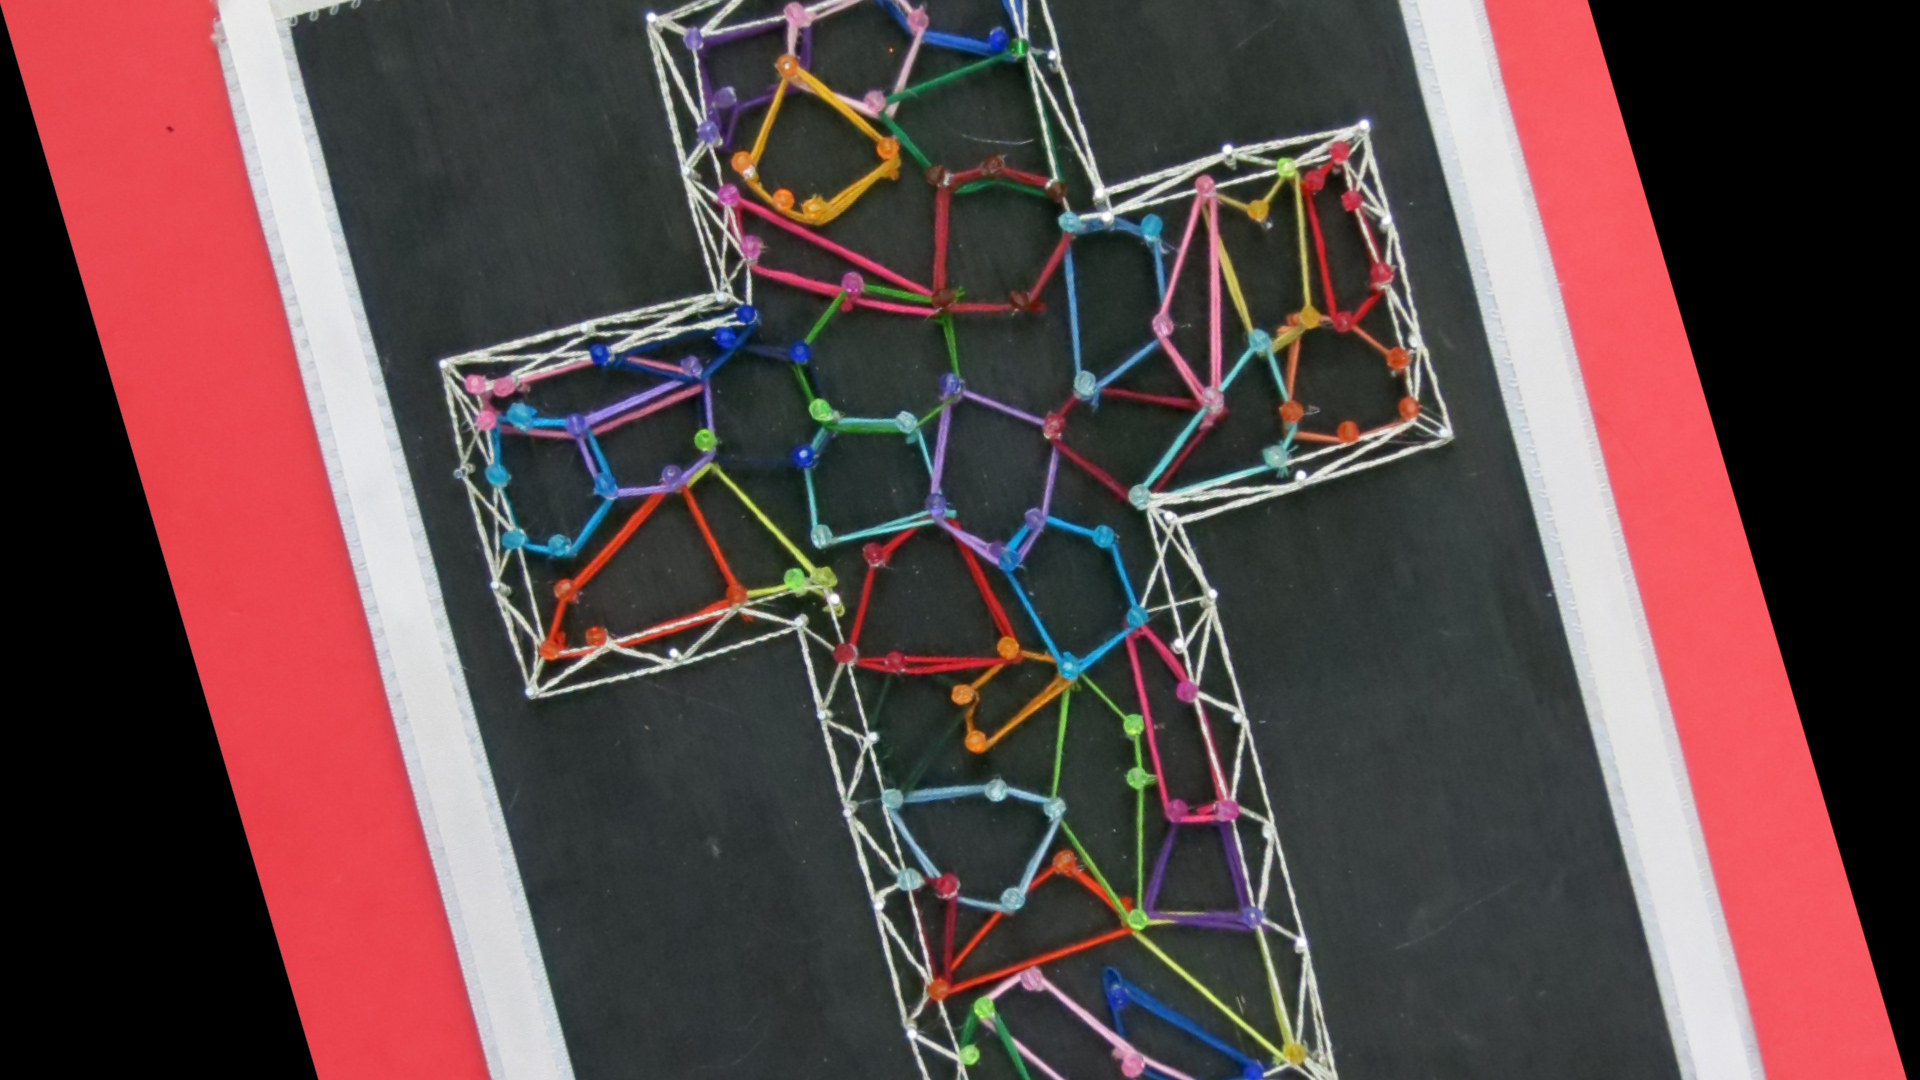 String Art Stained Glass Cross Multicolored by Hey Maaa.jpg